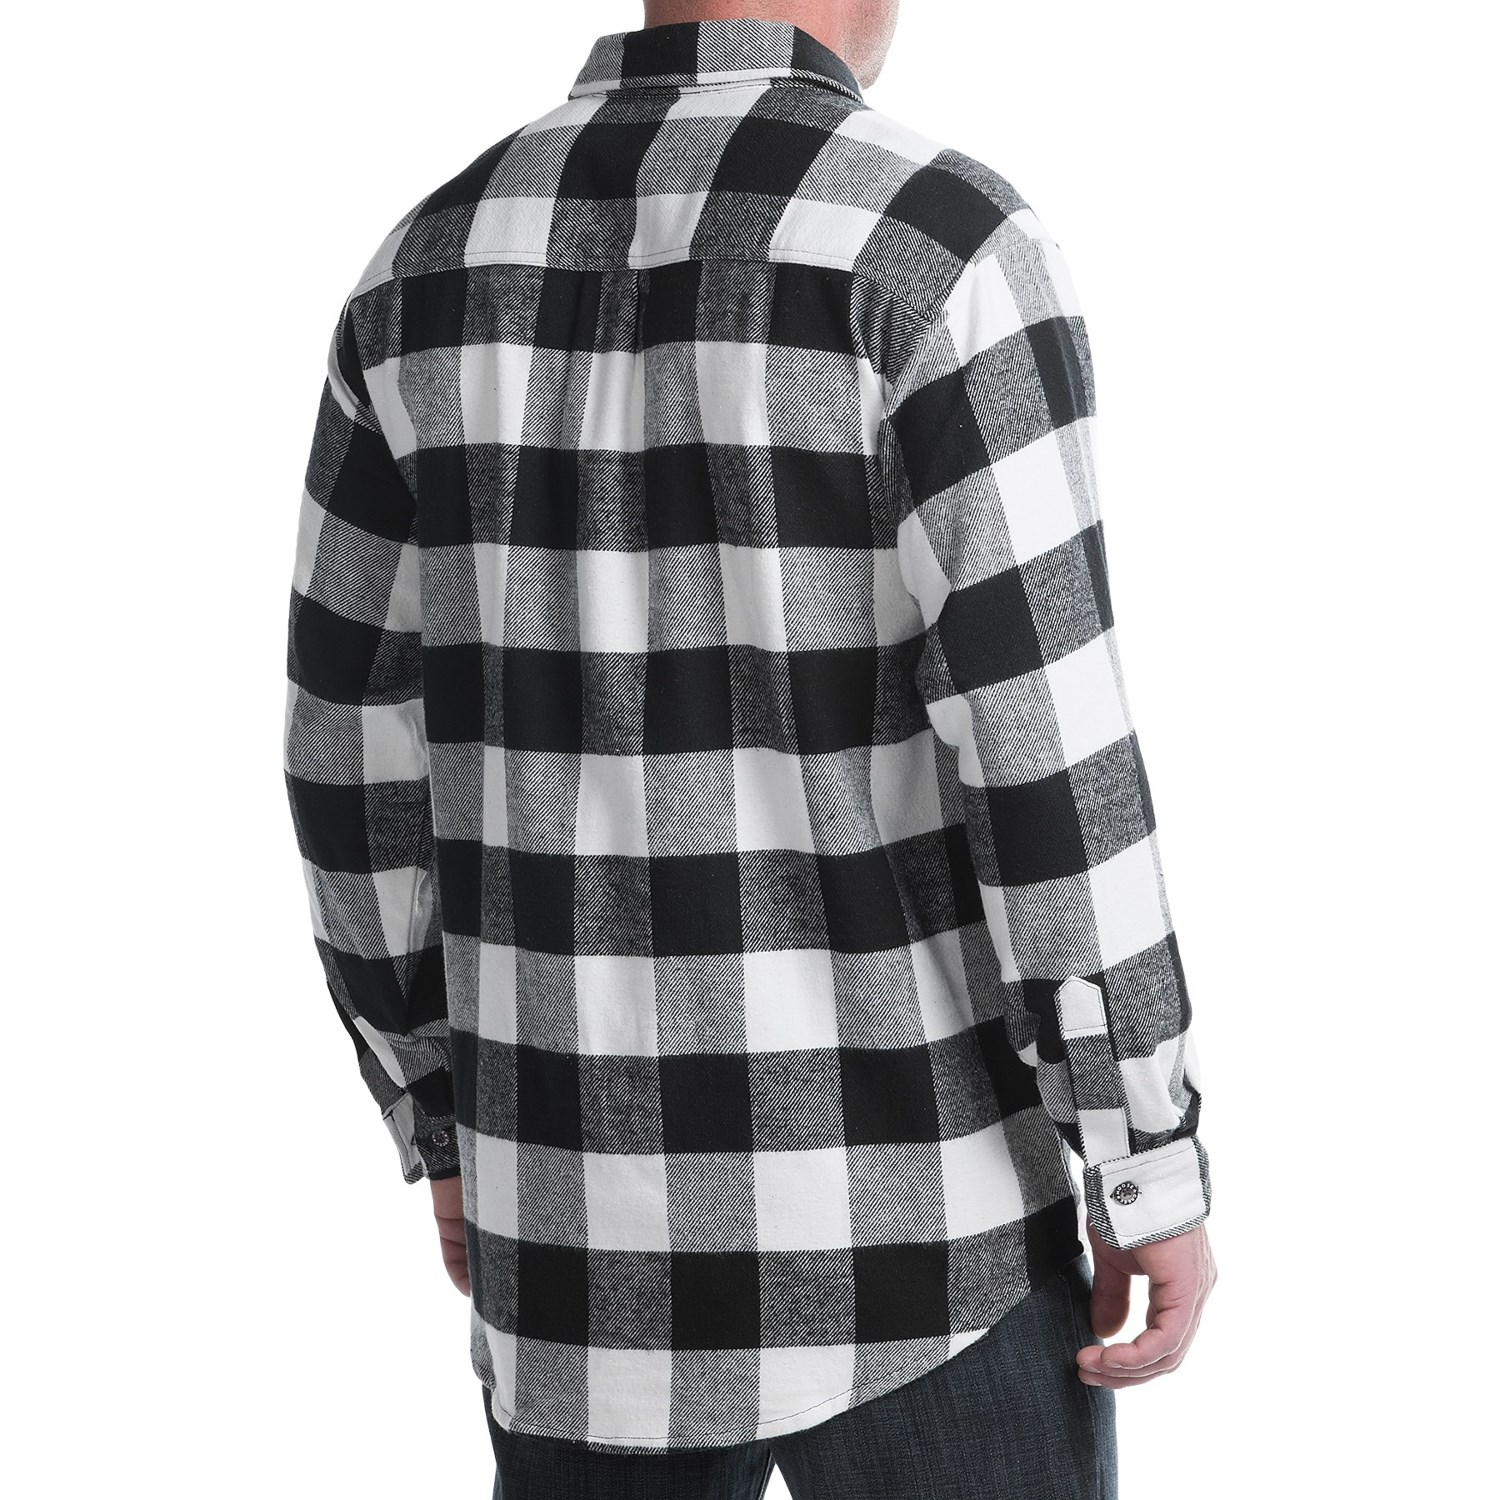 Moose Creek Brawny Plaid Shirt (For Men) - Save 33%